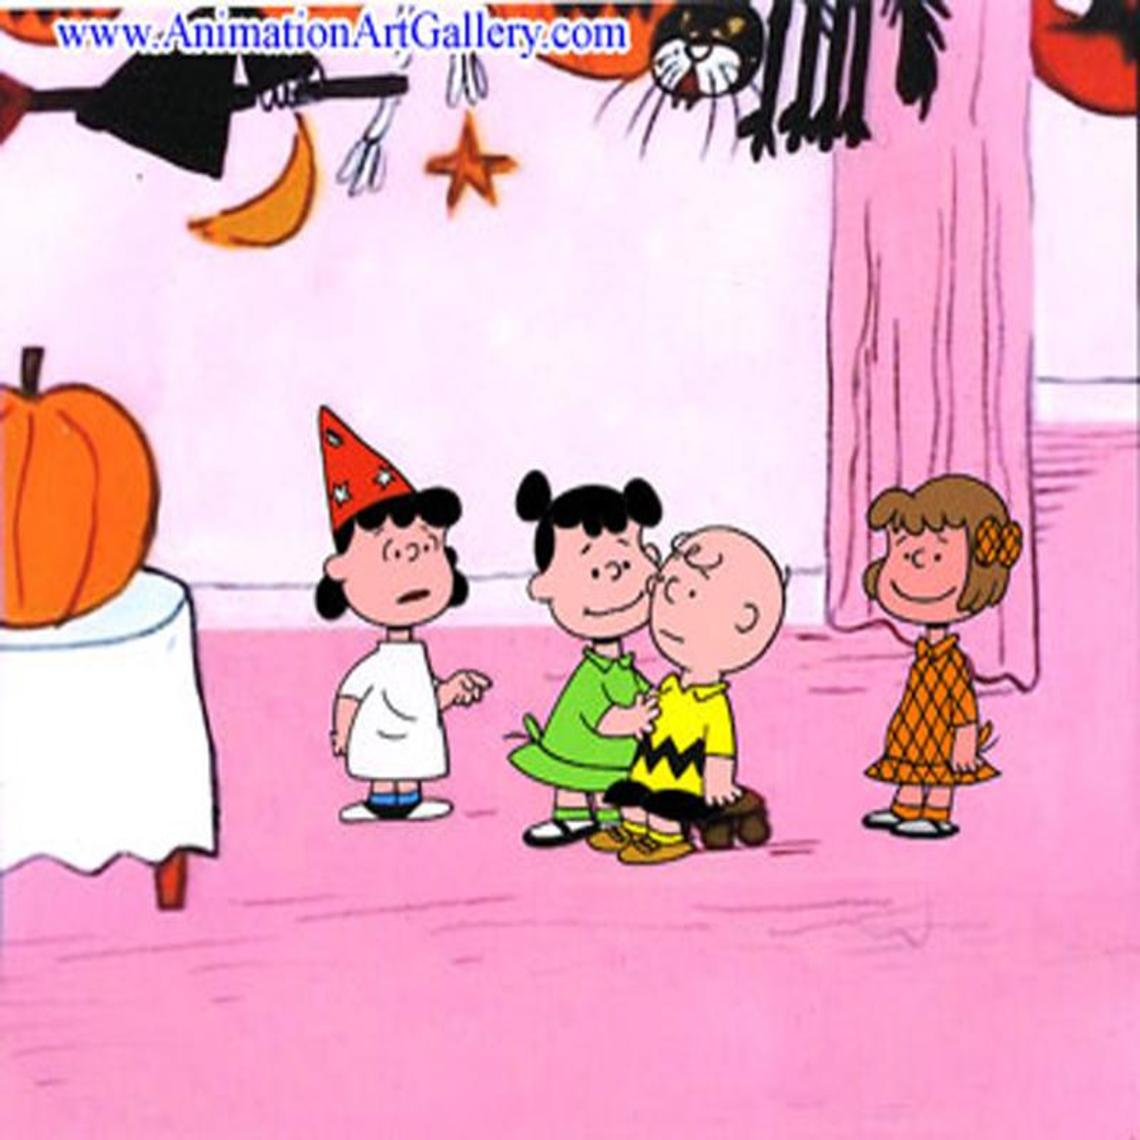 charlie-brown-halloween-party-wallpaper-wp4003879-1